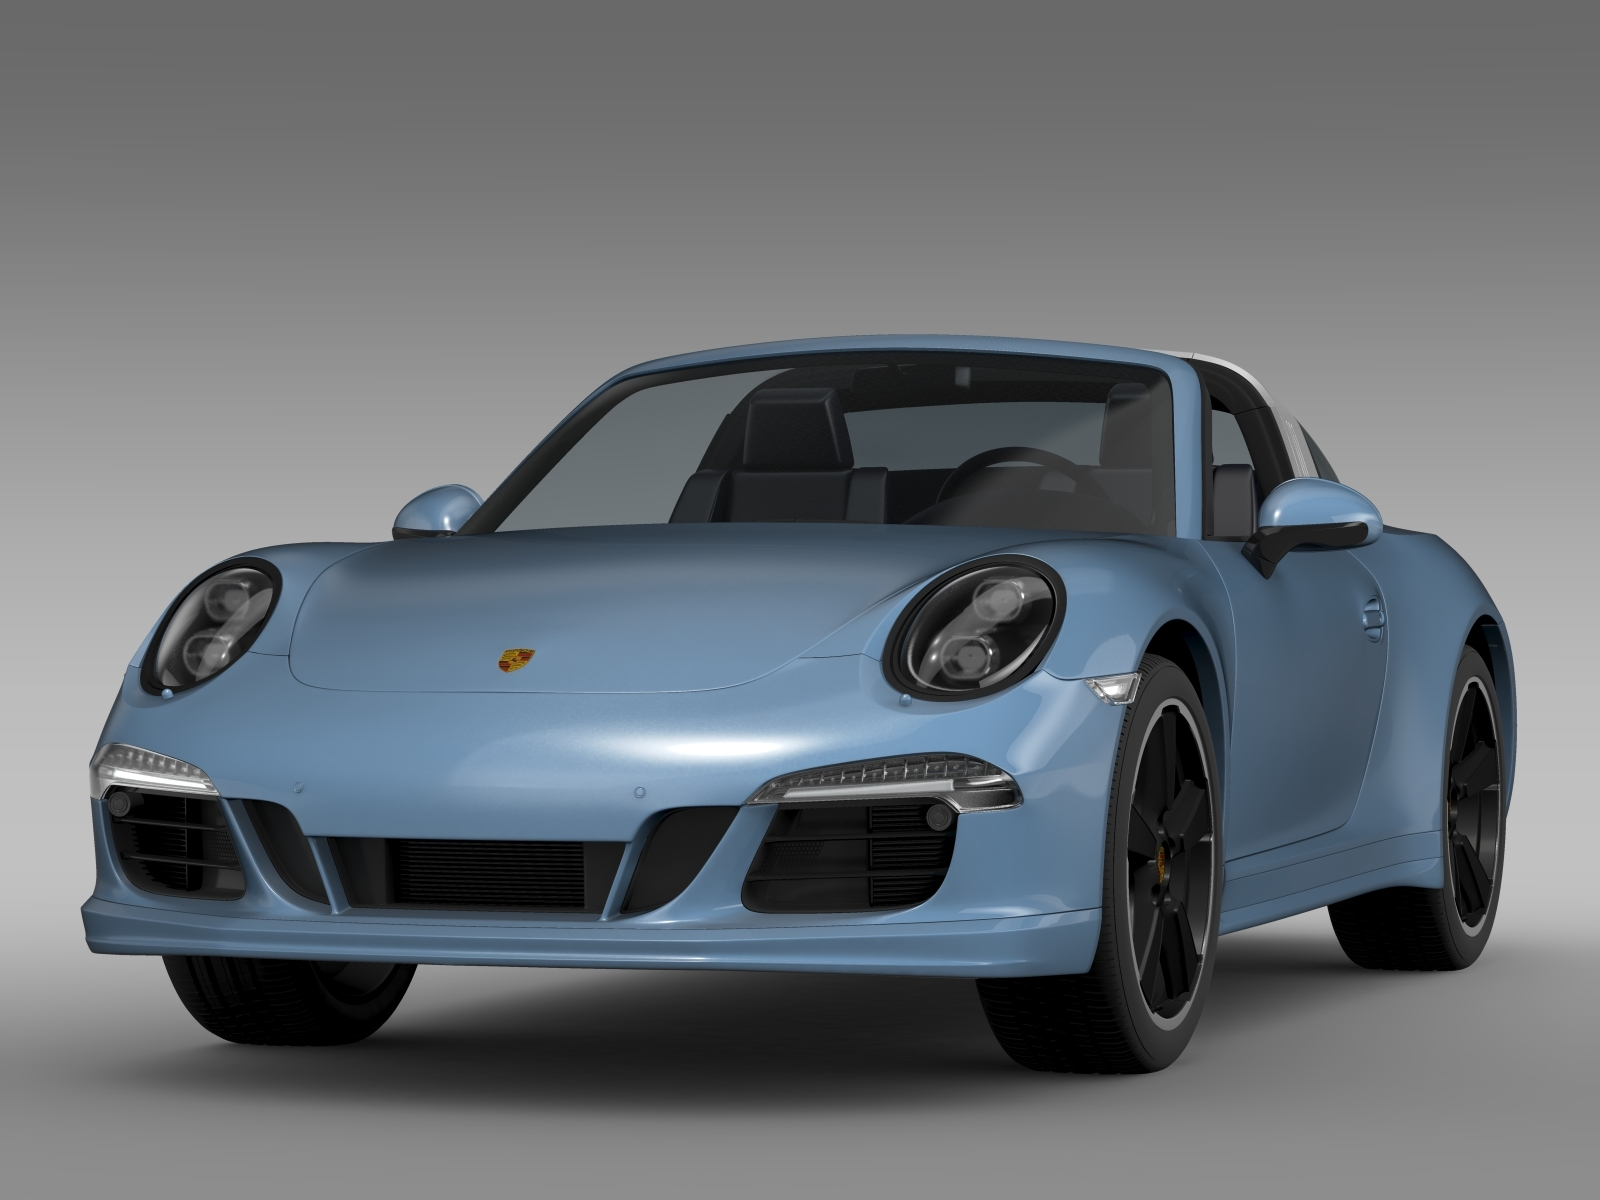 porsche 911 targa 4s exclusive 2015 3d model. Black Bedroom Furniture Sets. Home Design Ideas